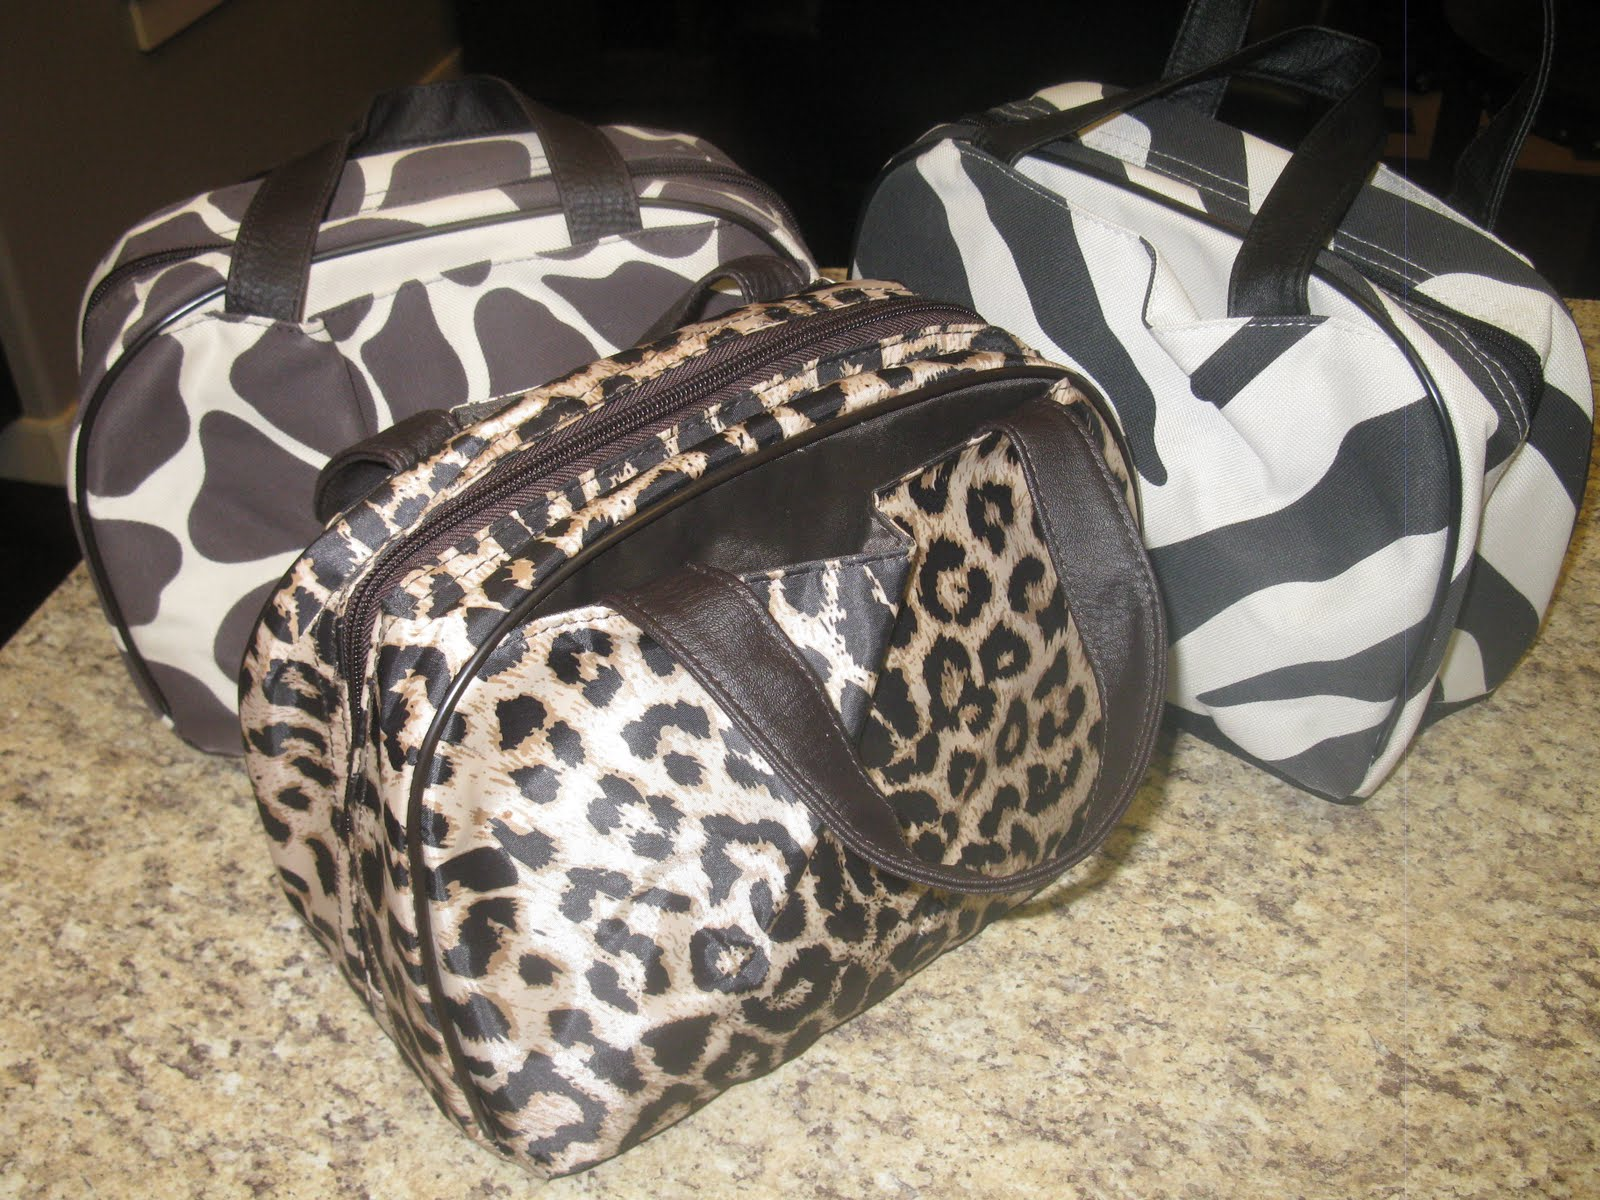 Emma S Is The Leopard Print Bag And Sophia Giraffe Olivia Got A Lunch When We Were Down In States But Bought It I